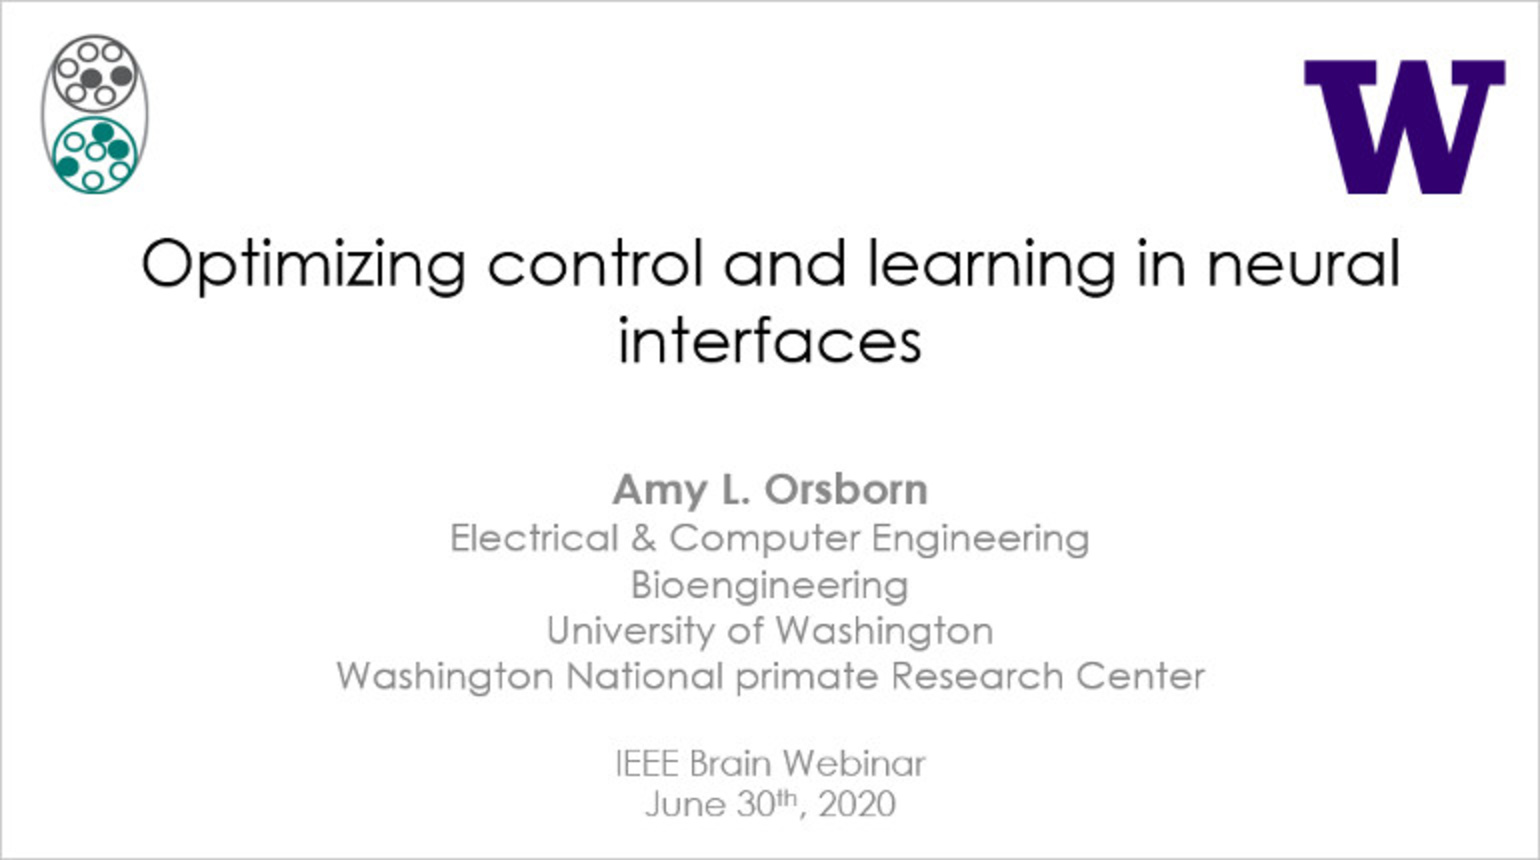 IEEE Brain: Optimizing Control and Learning in Neural Interfaces